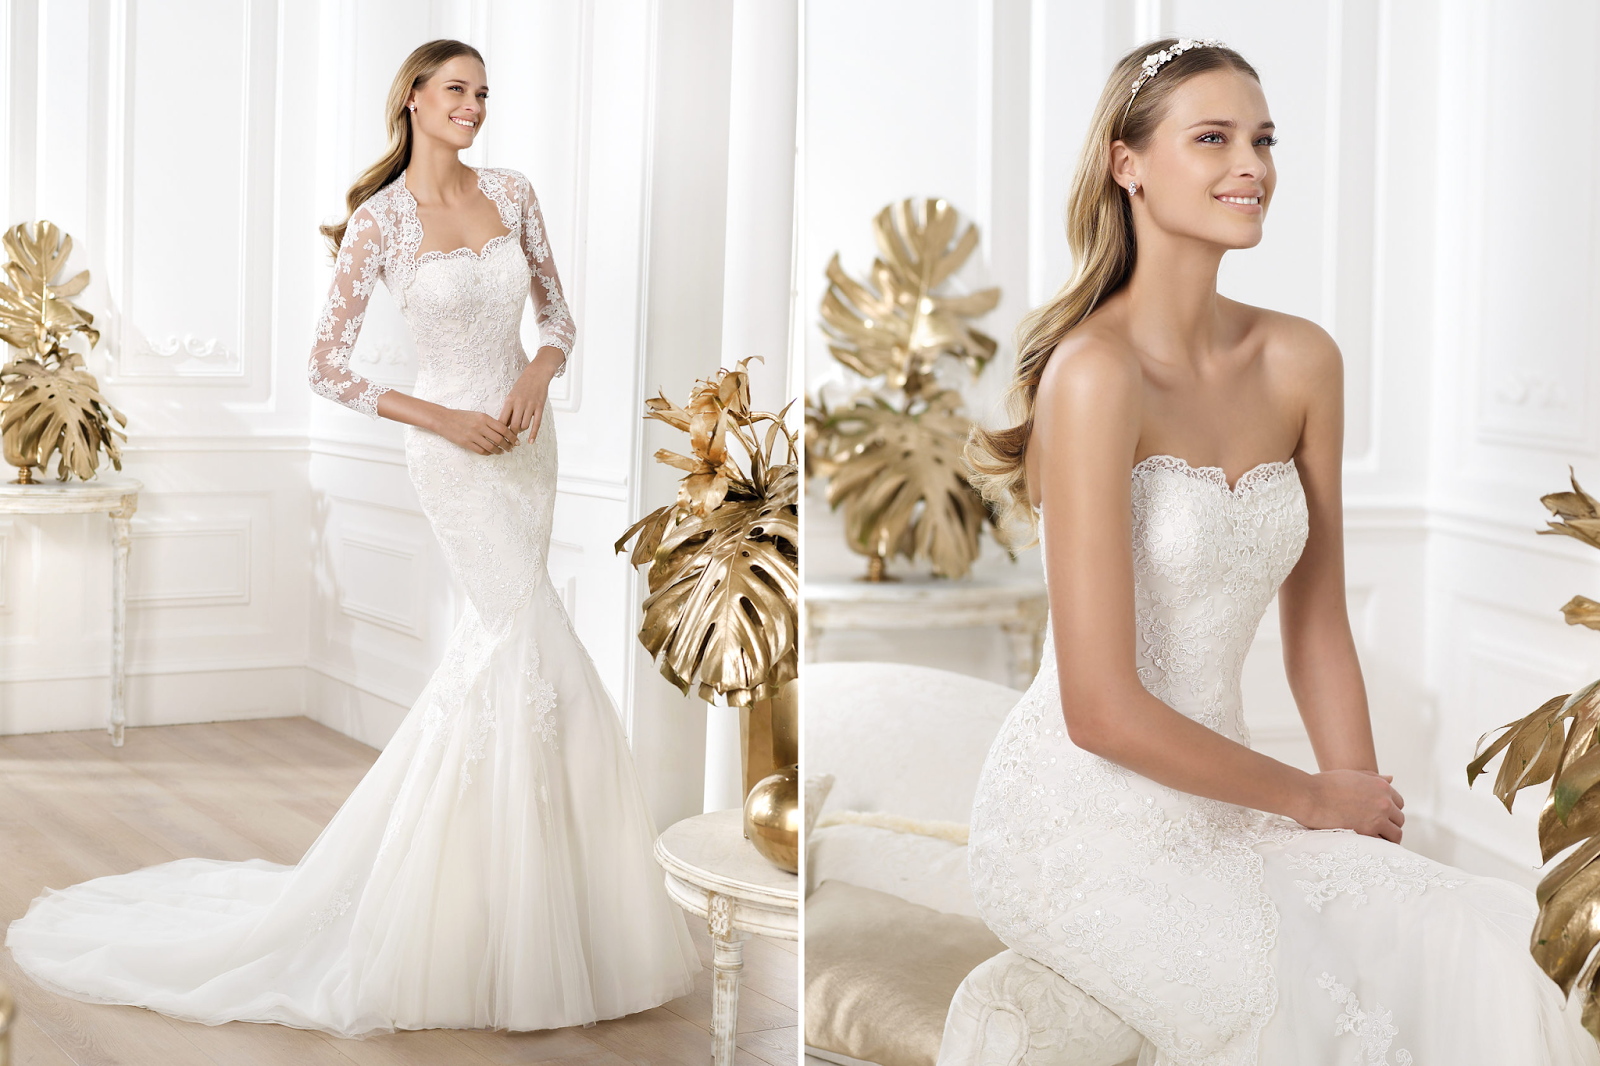 WEDDING COLLECTIONS: Lace Wedding Dresses